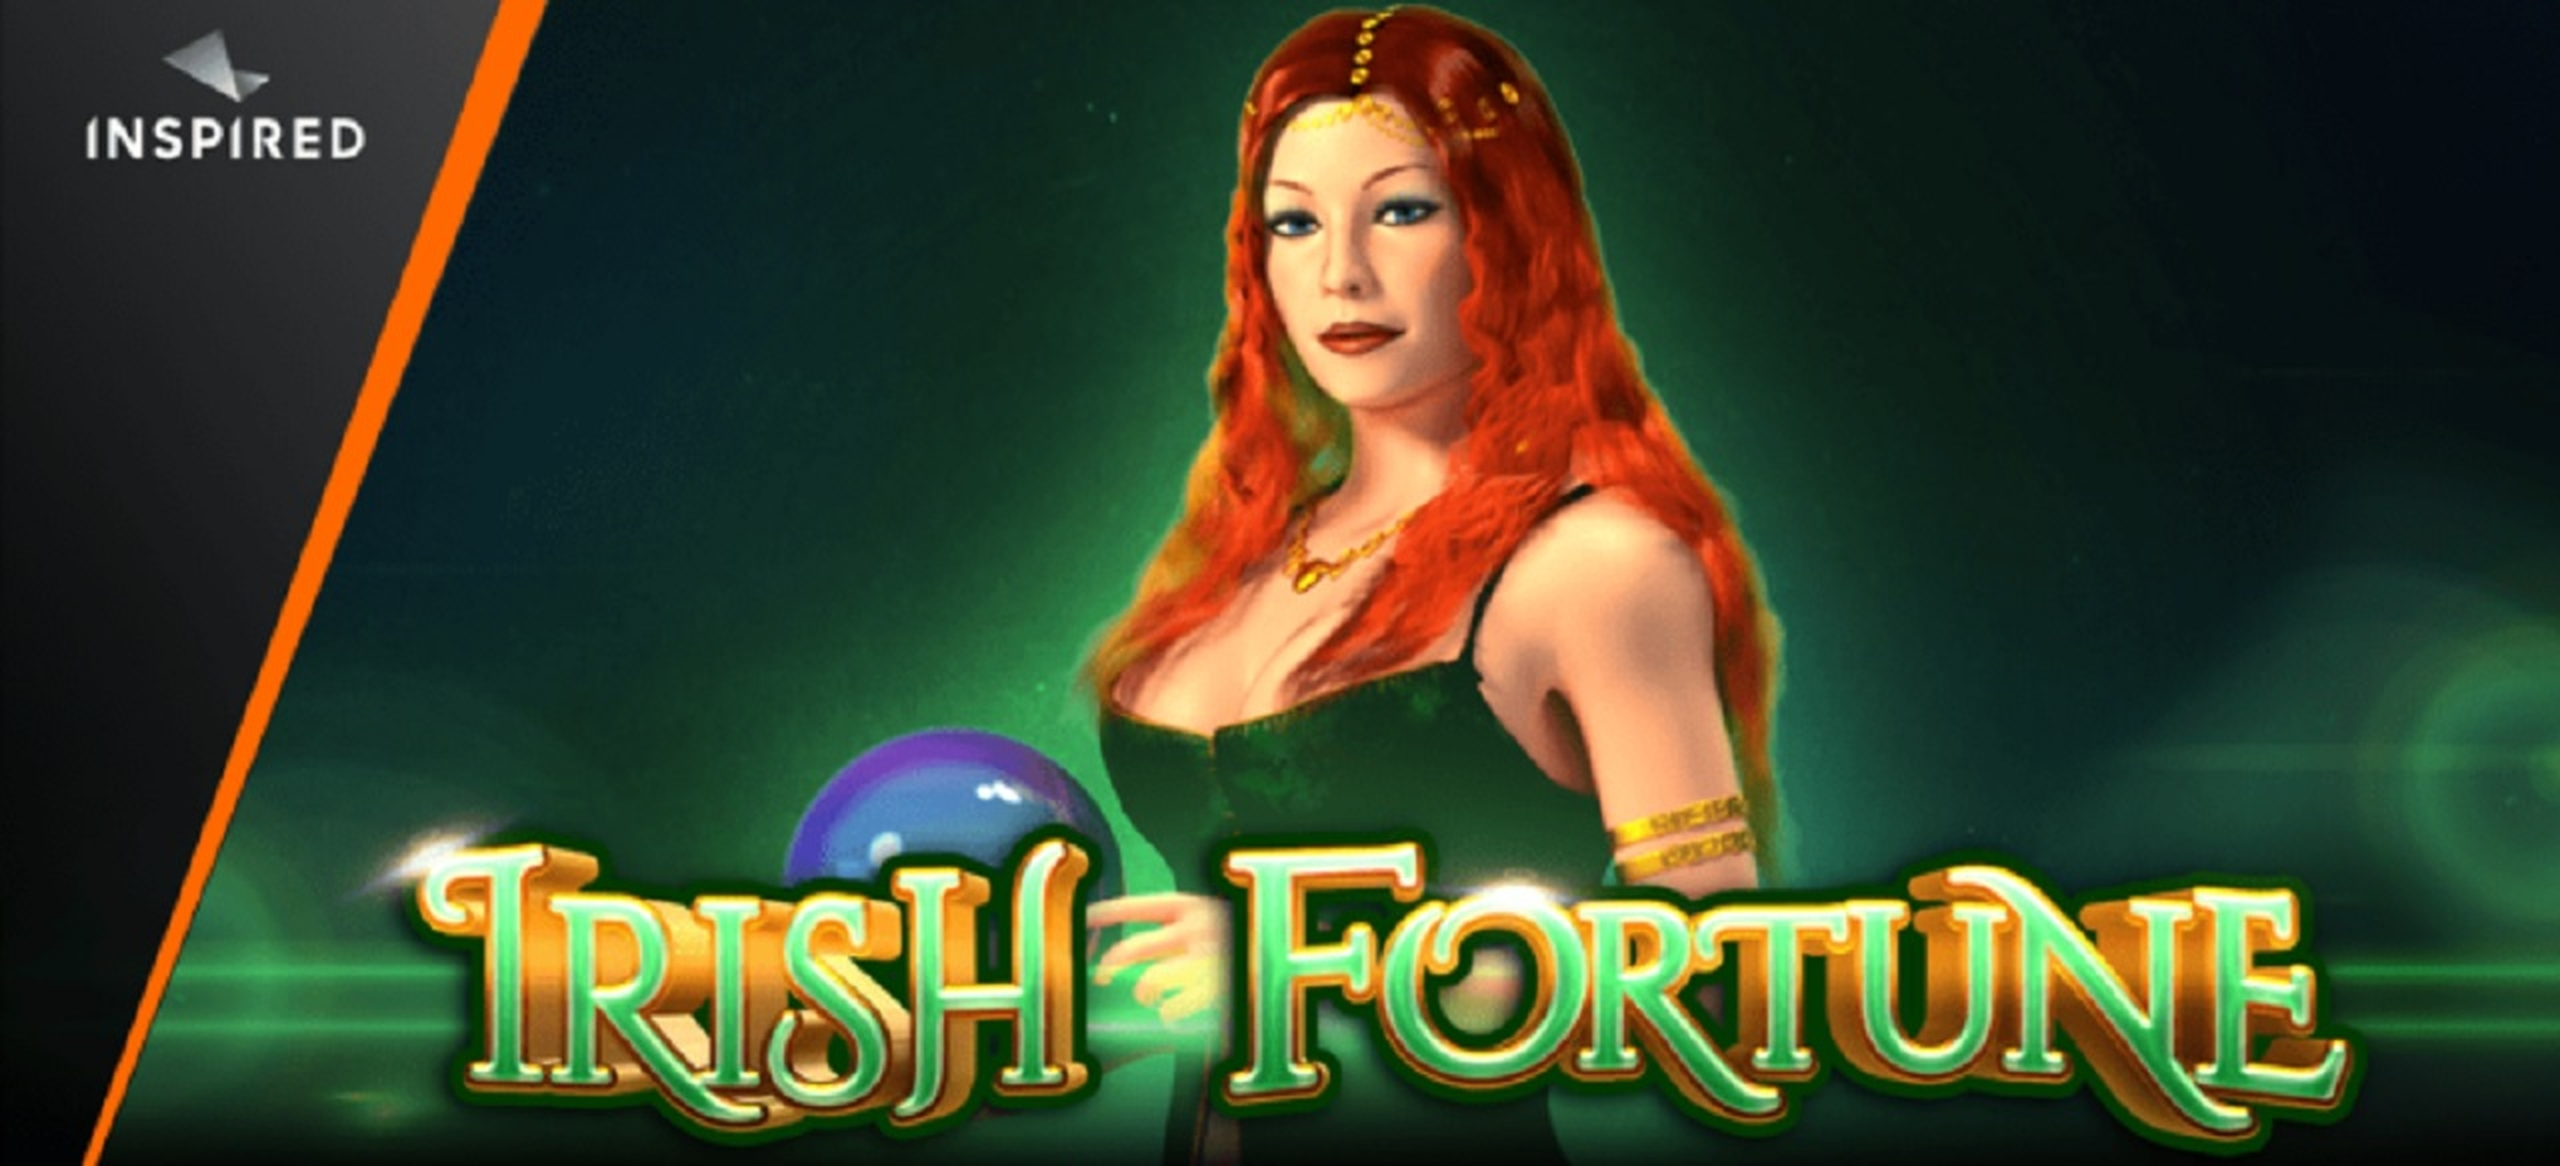 The Irish Fortune Online Slot Demo Game by Inspired Gaming